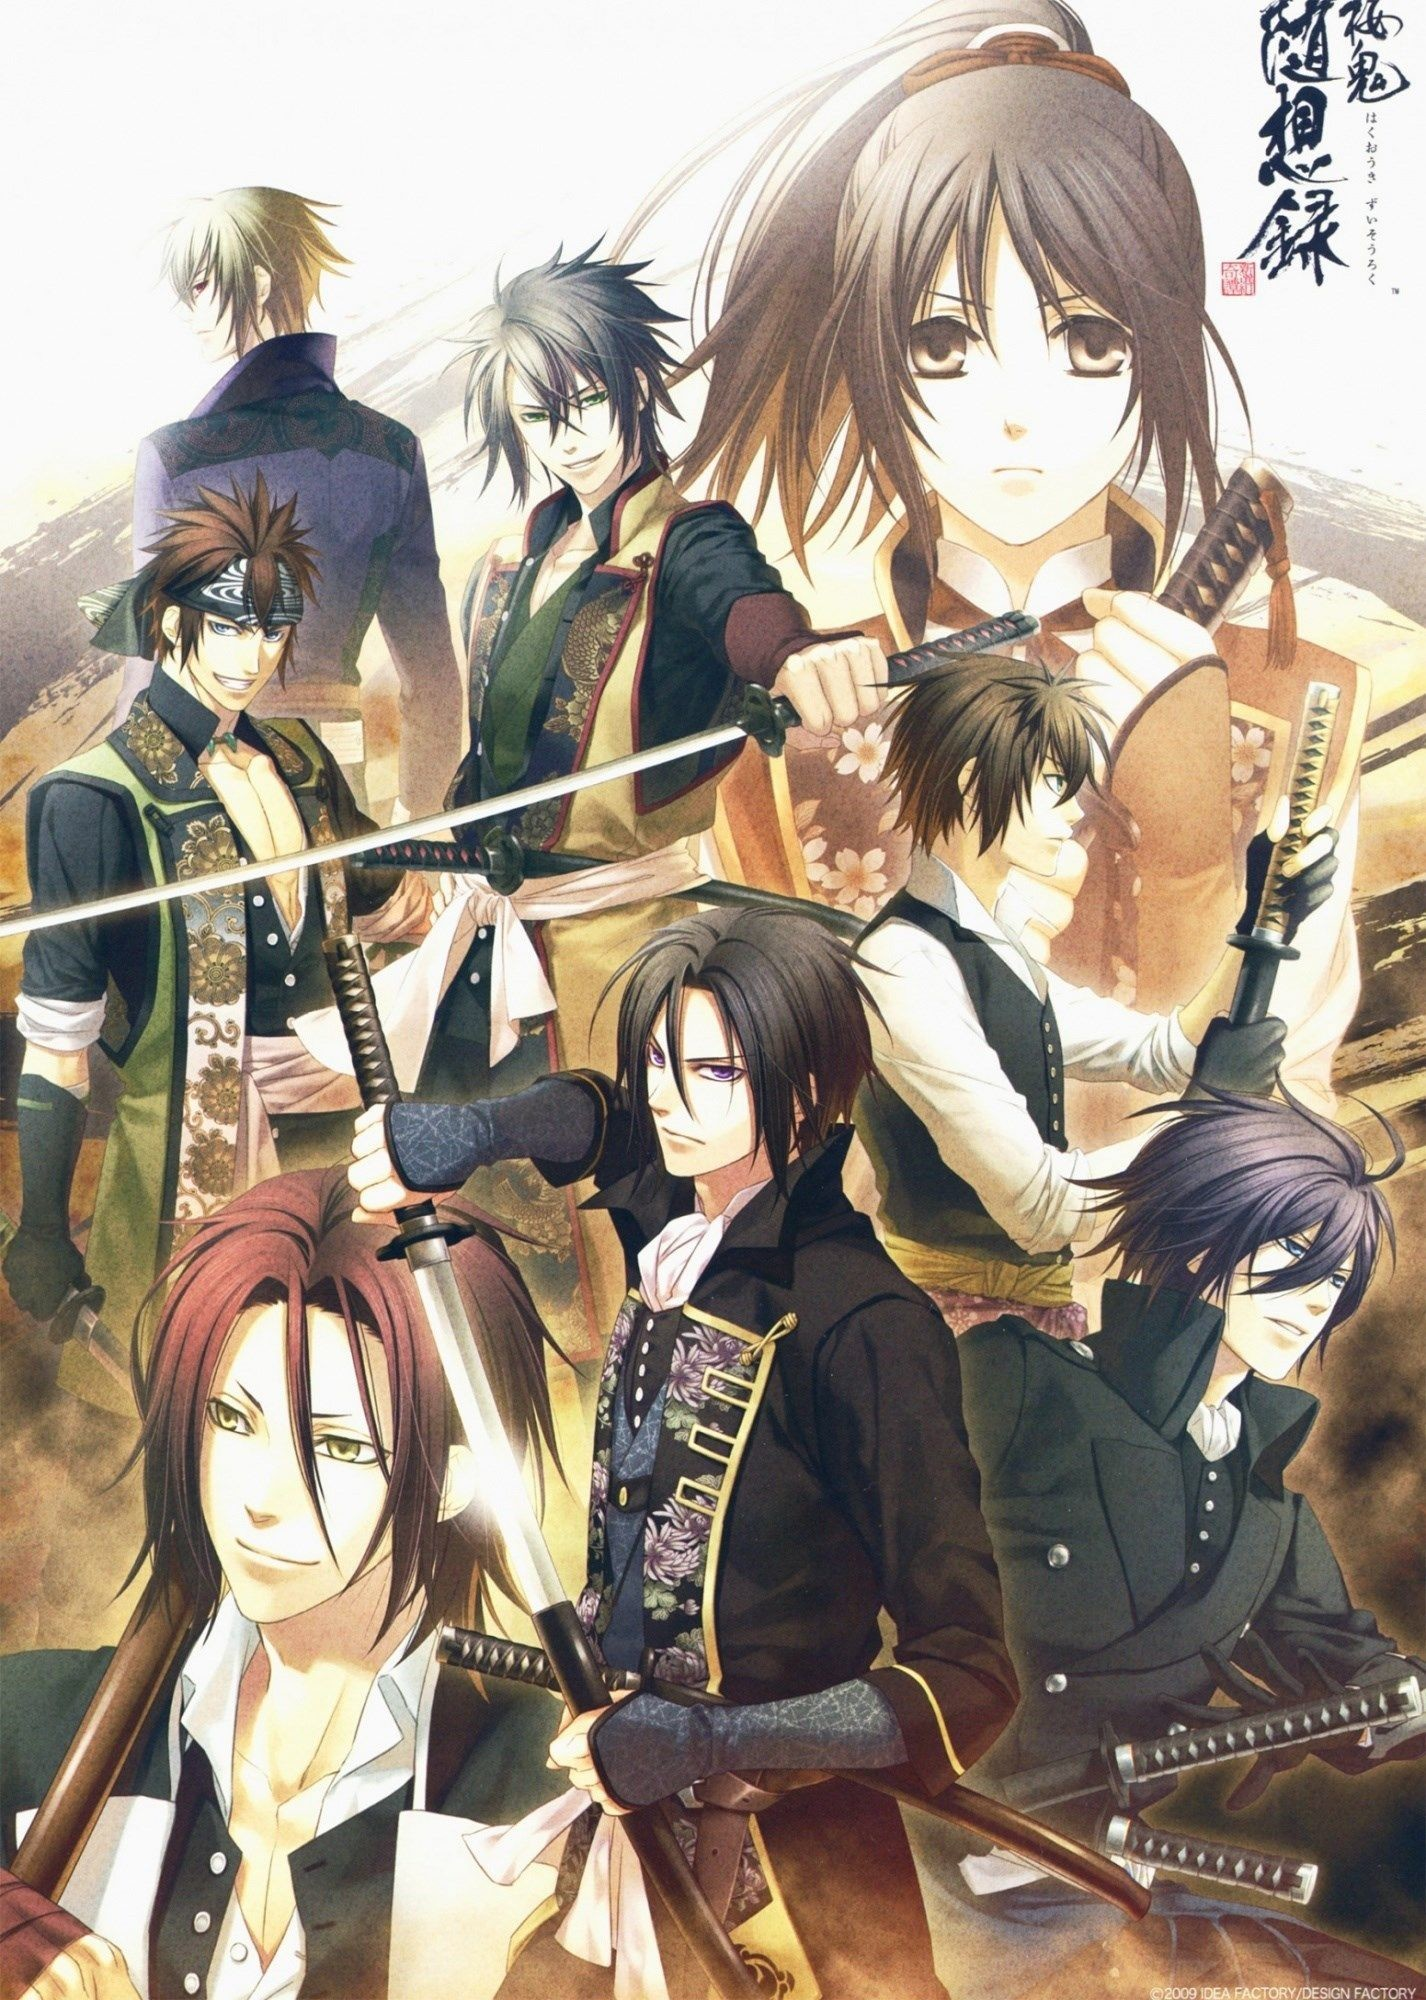 Res: 1426x2000, Hakuouki images HIJIKATA TOSHIZOU HD wallpaper and .